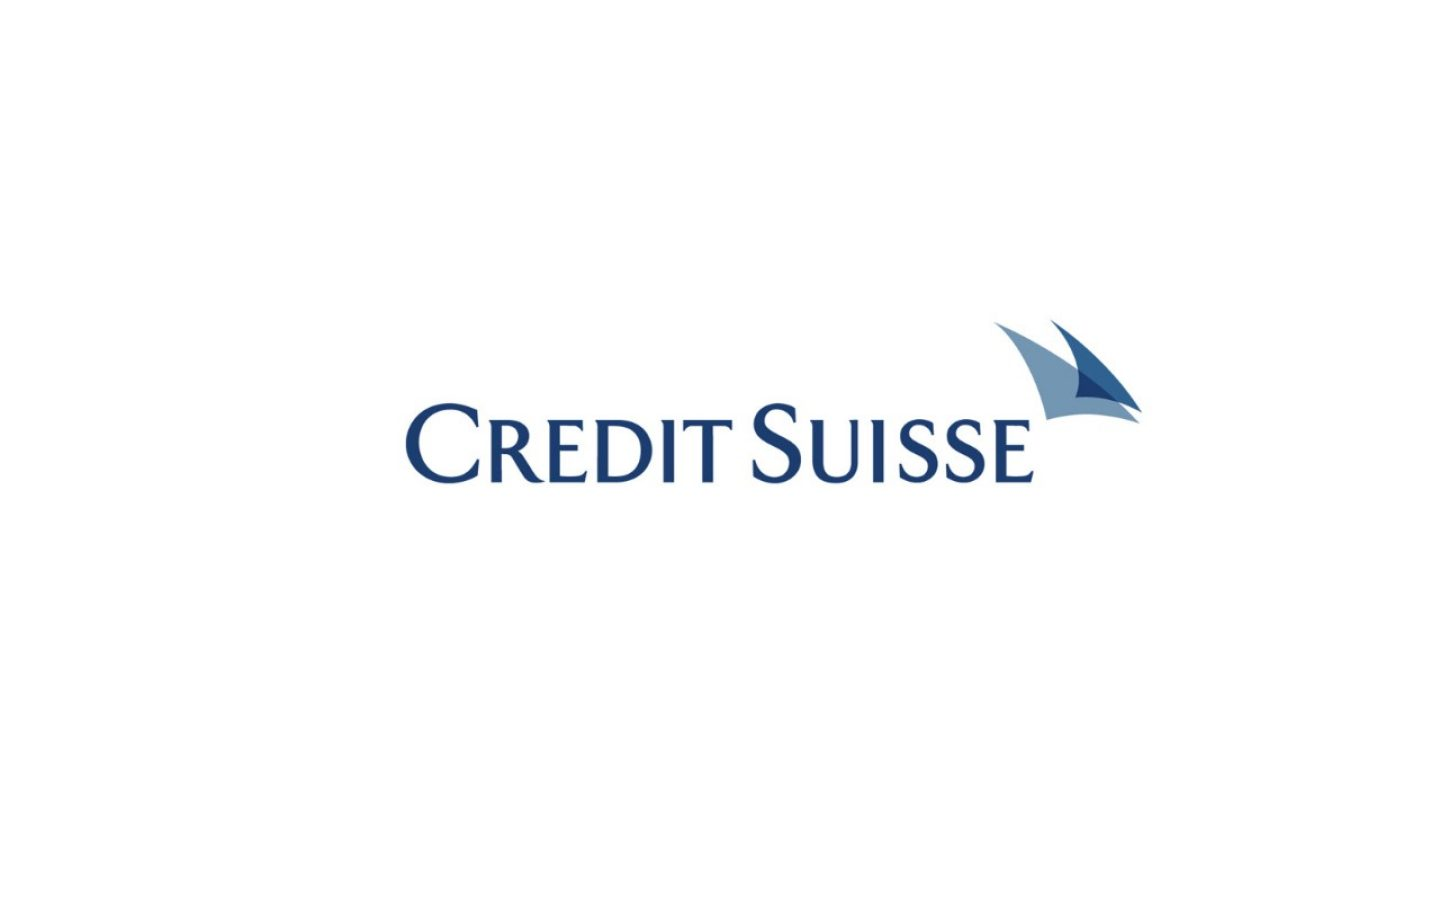 https://cdnext.credit-suisse.com/about-us/en/our-company/who-we-are/brand/_jcr_content/content/mediagallery/mediaGalleryItem/68_1560416214815/image.transform/width-l/img.brand-2006